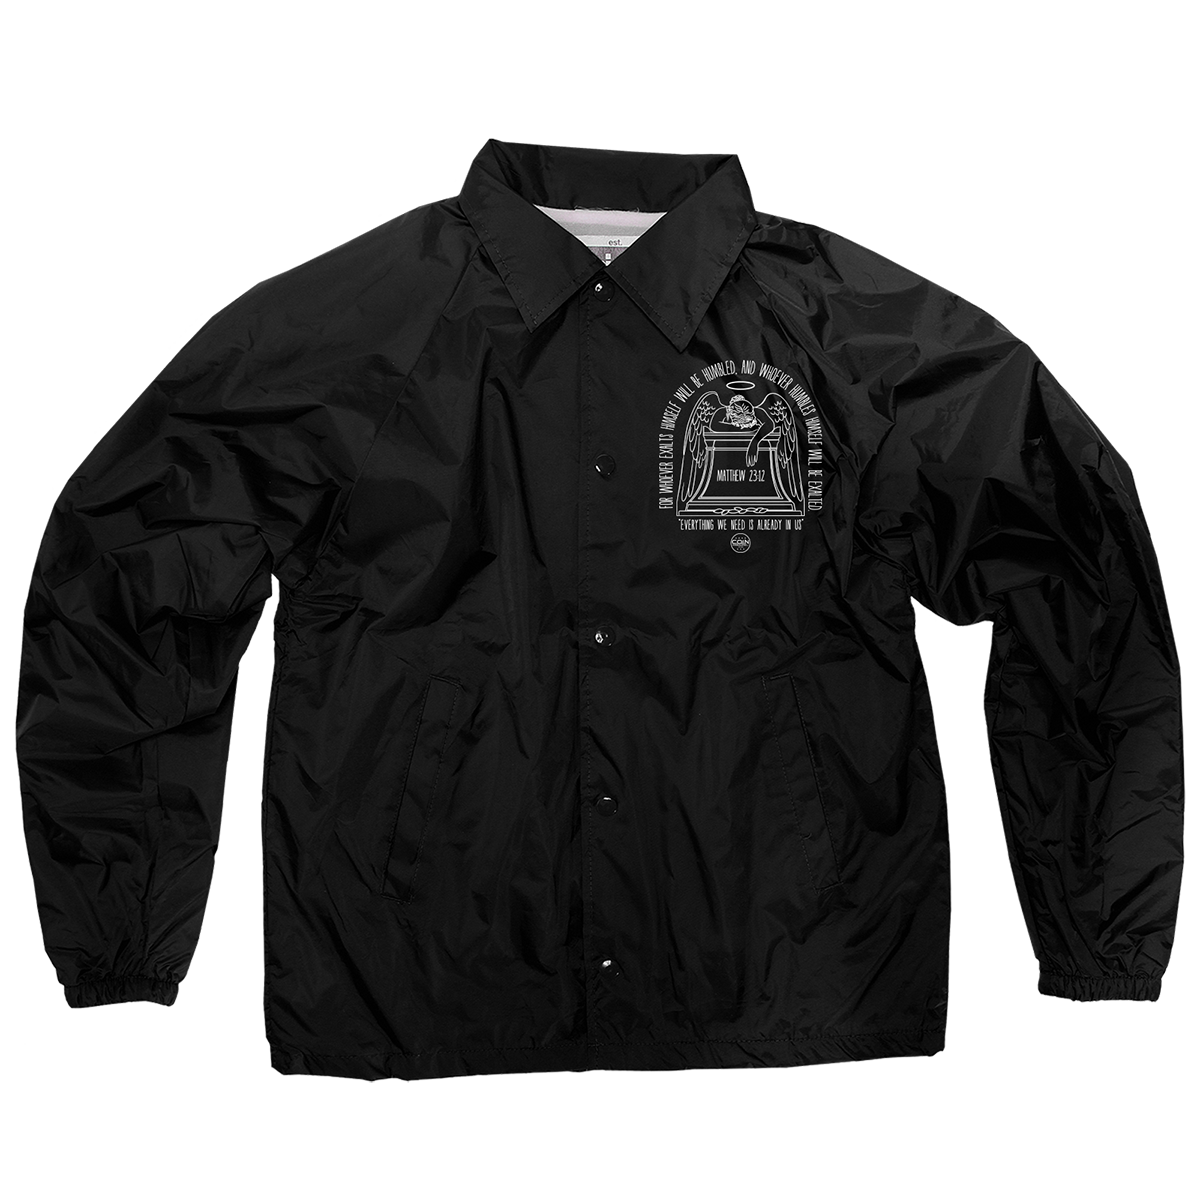 Humble Jacket [Black]